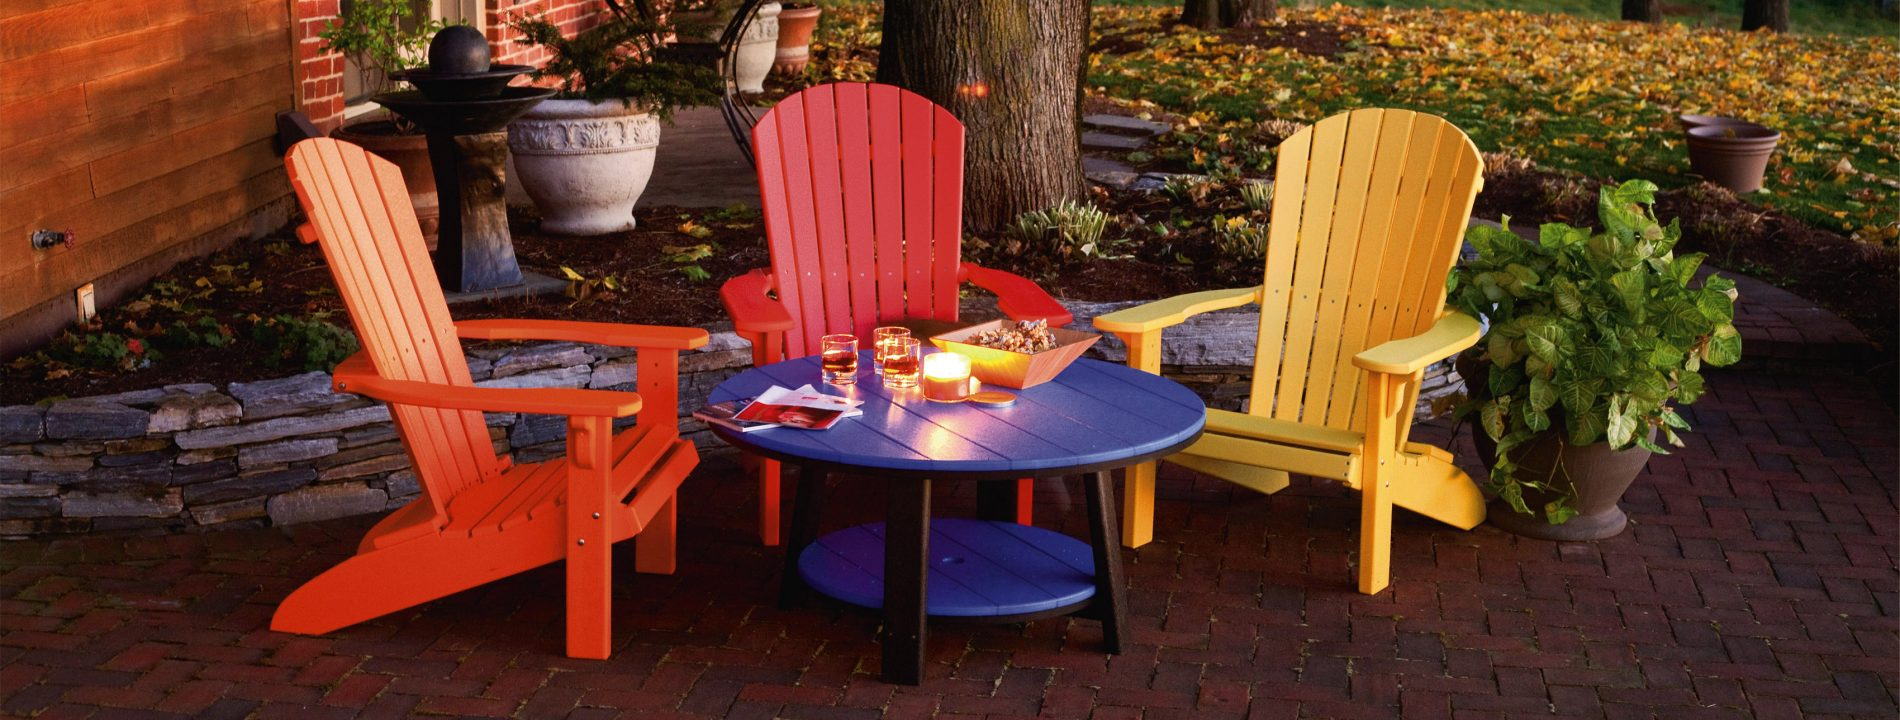 poly furniture relax around the table cabin outdoor furniture